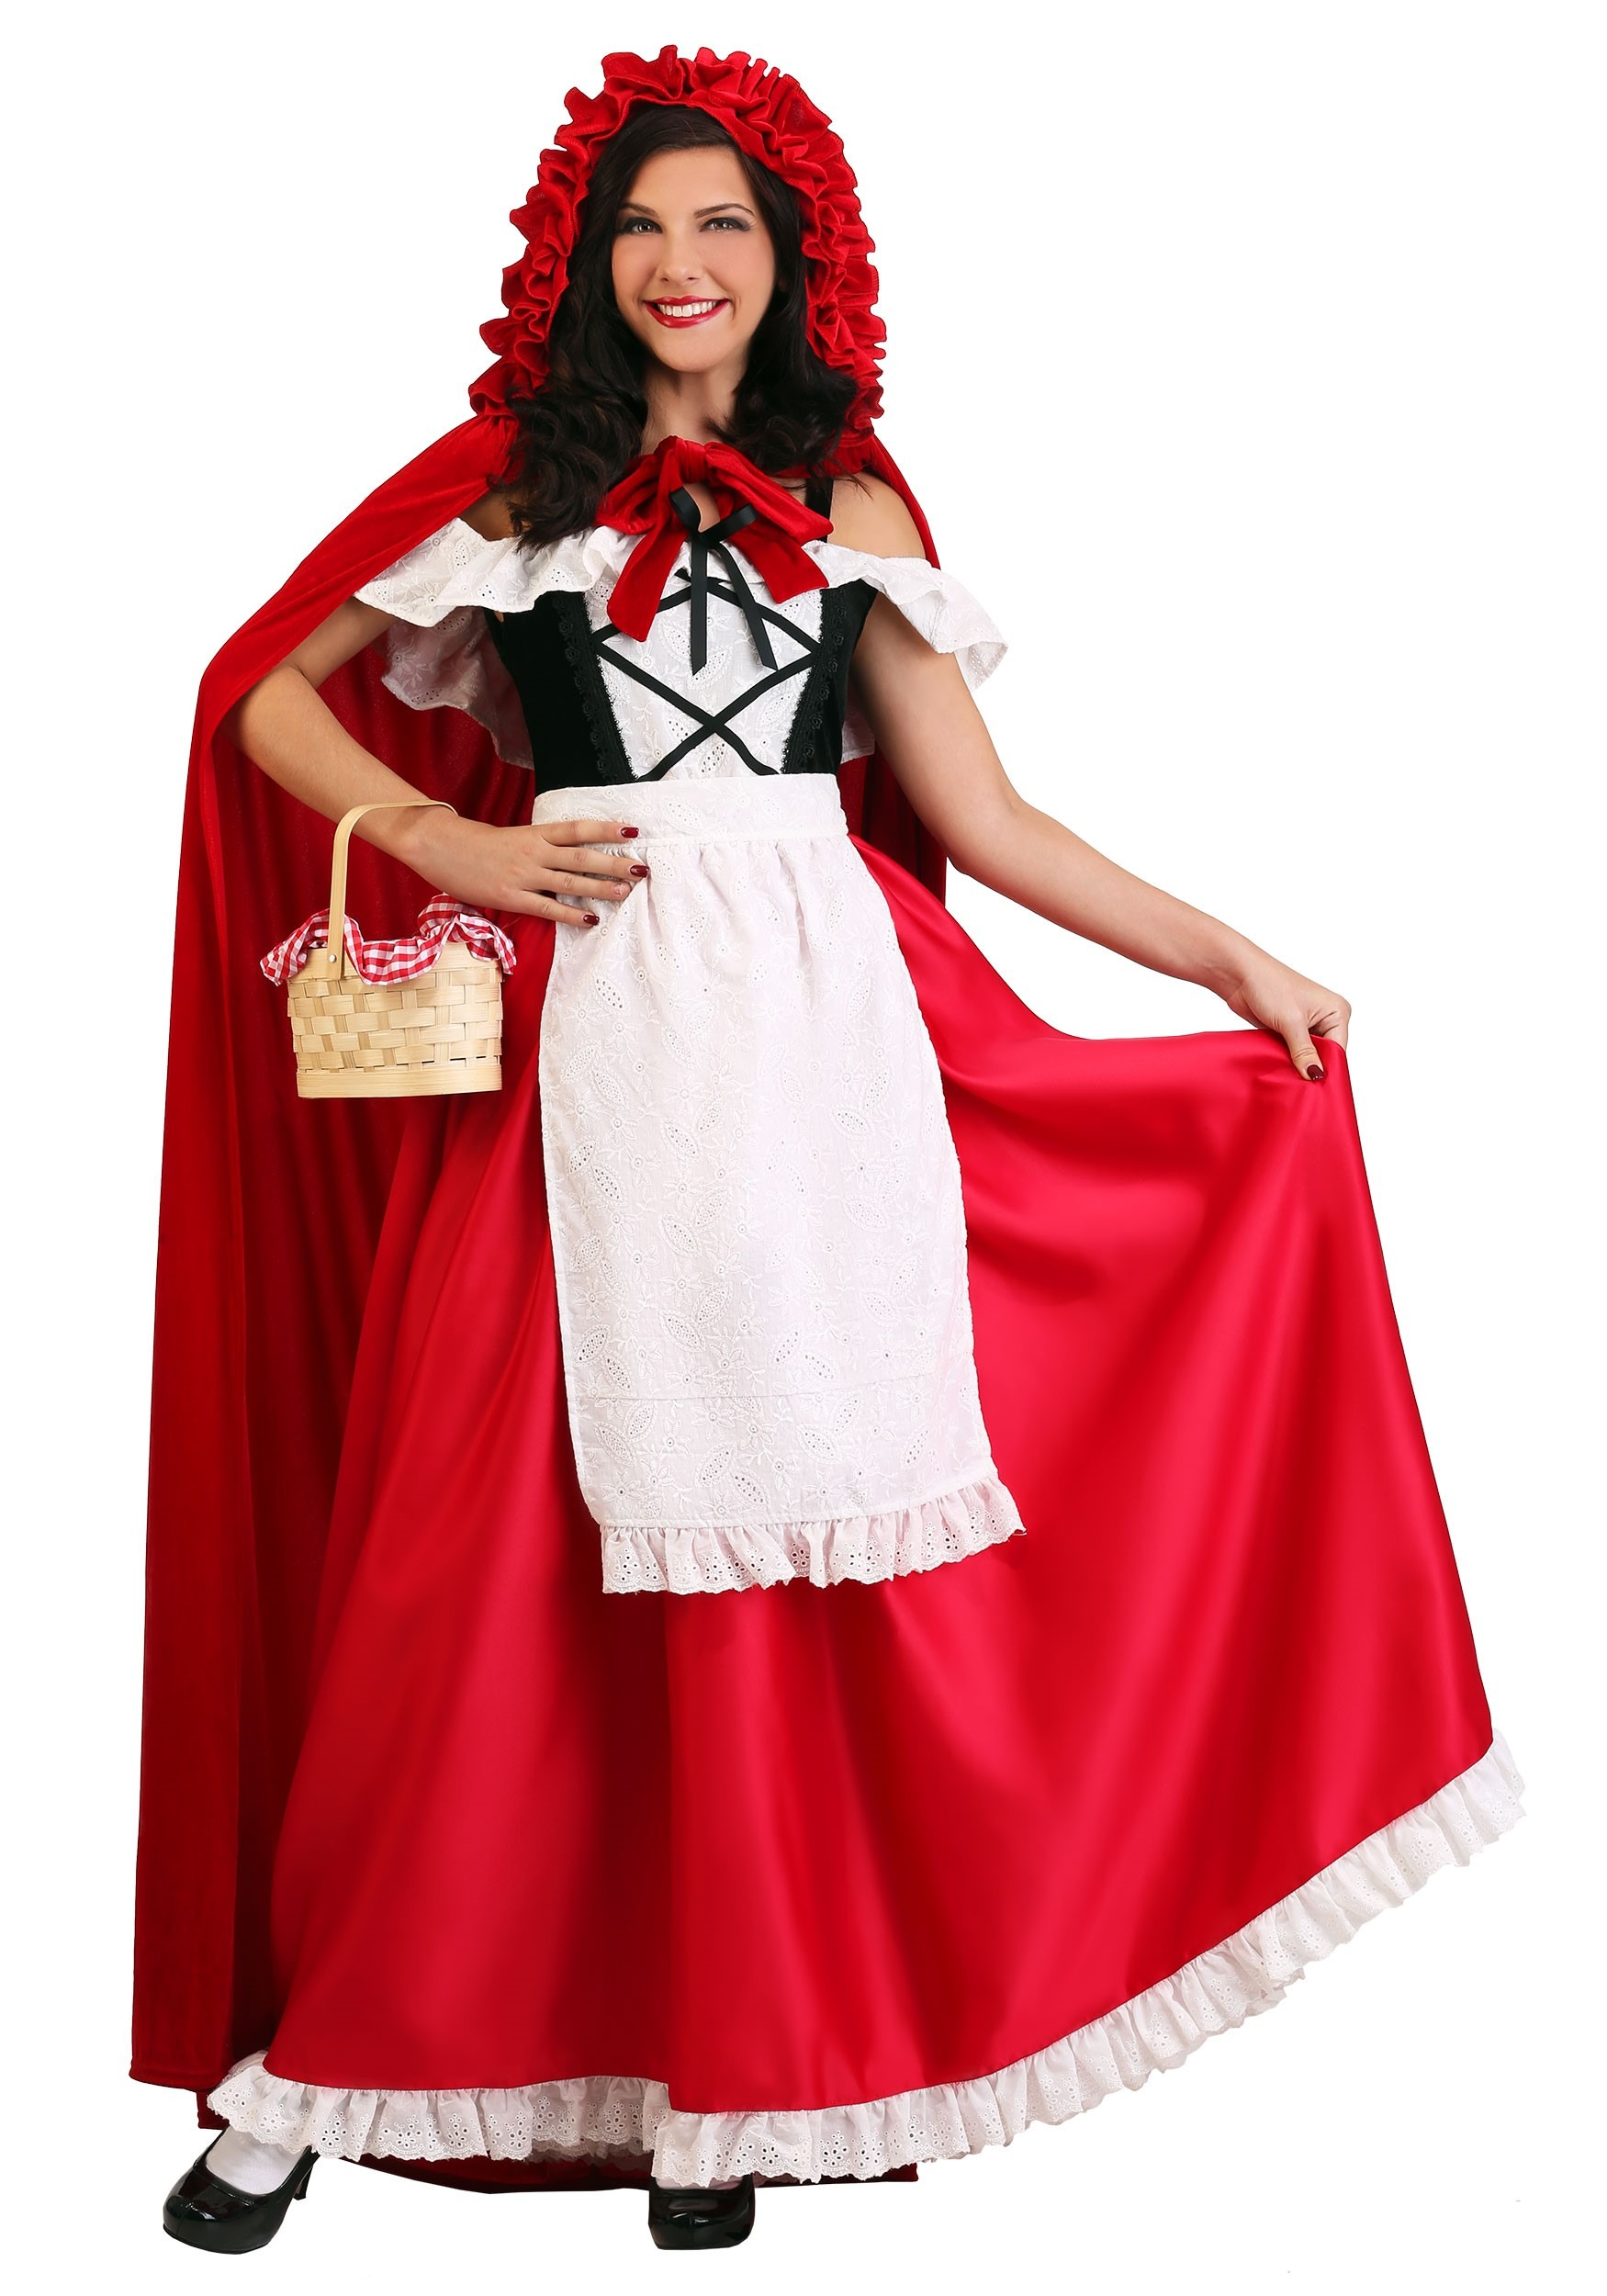 Plus Size Deluxe Red Riding Hood Costume